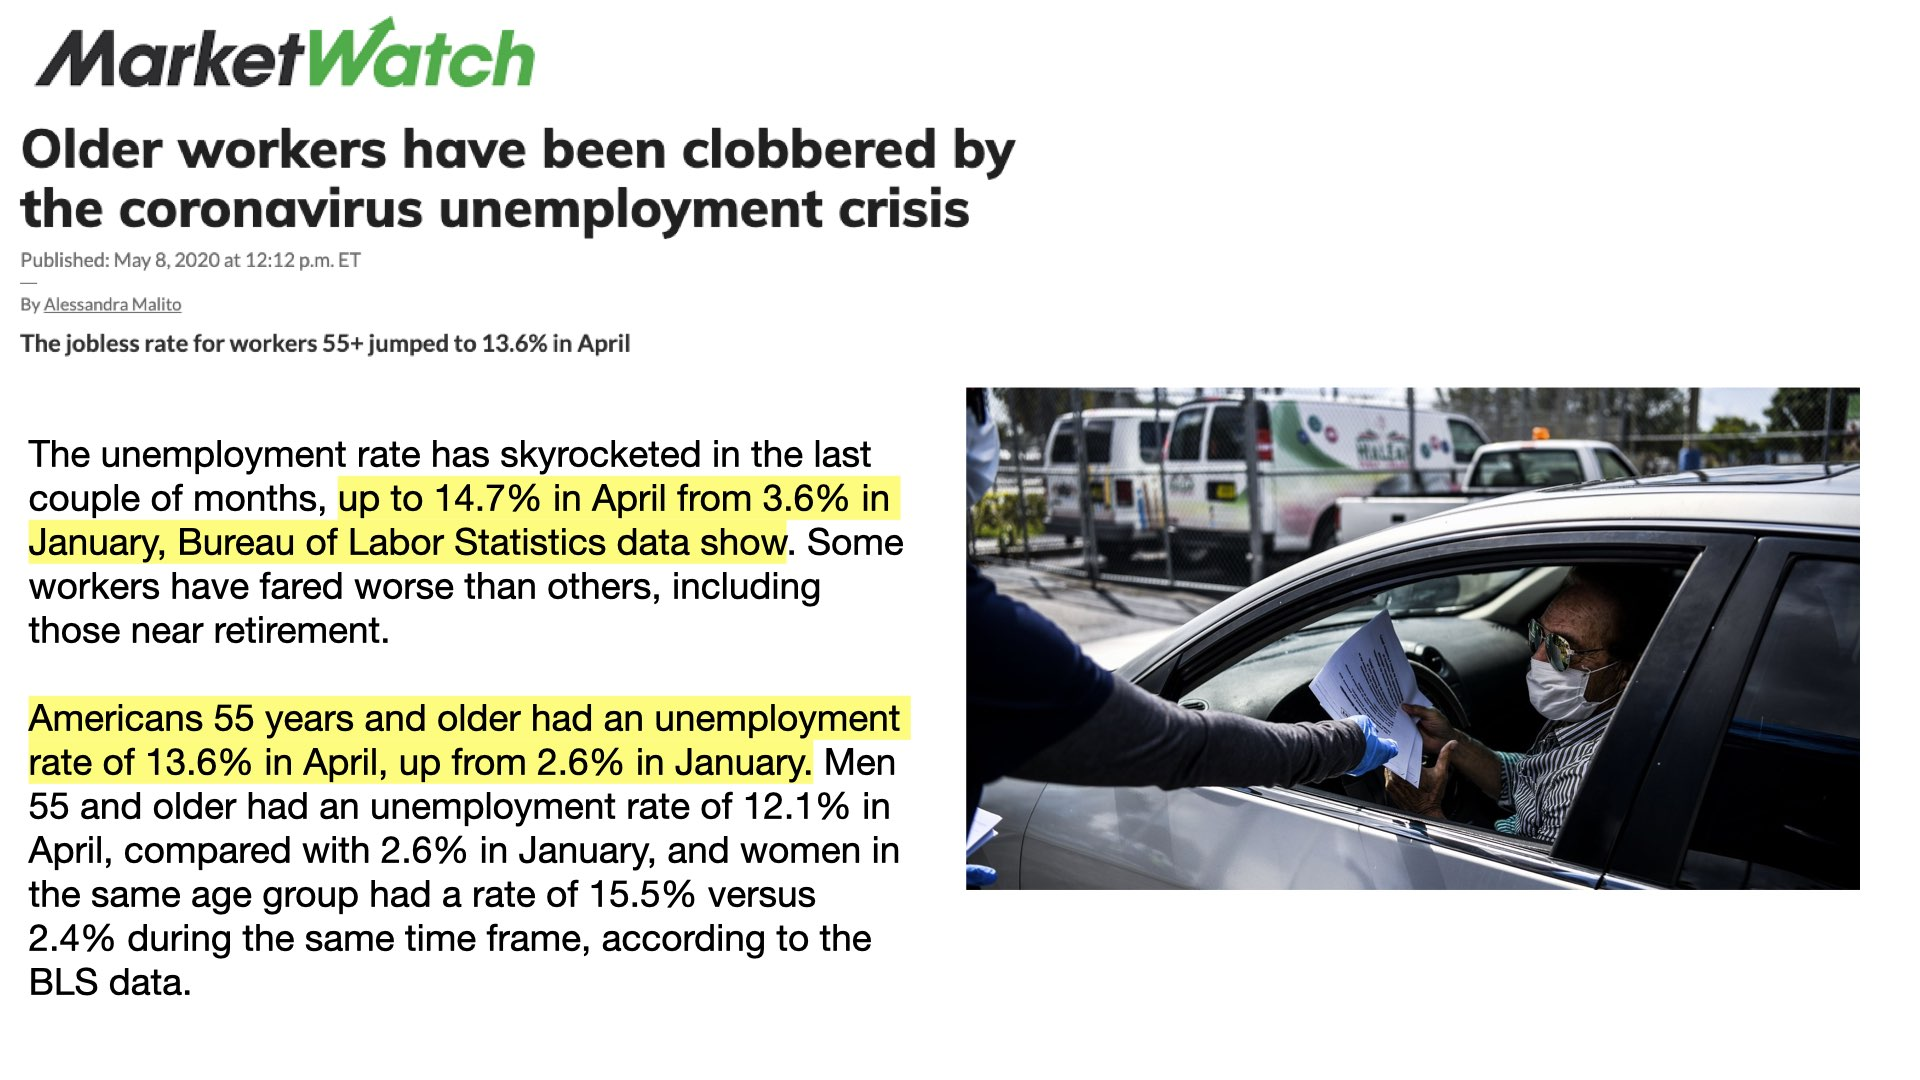 MarketWatch noted Americans 55 and older have been clobbered by the coronavirus' economic fallout. In January of this year MarketWatch notes the unemployment rate for those 55 and older was 2.6%. By April that unemployment number jumped to 13.6%.